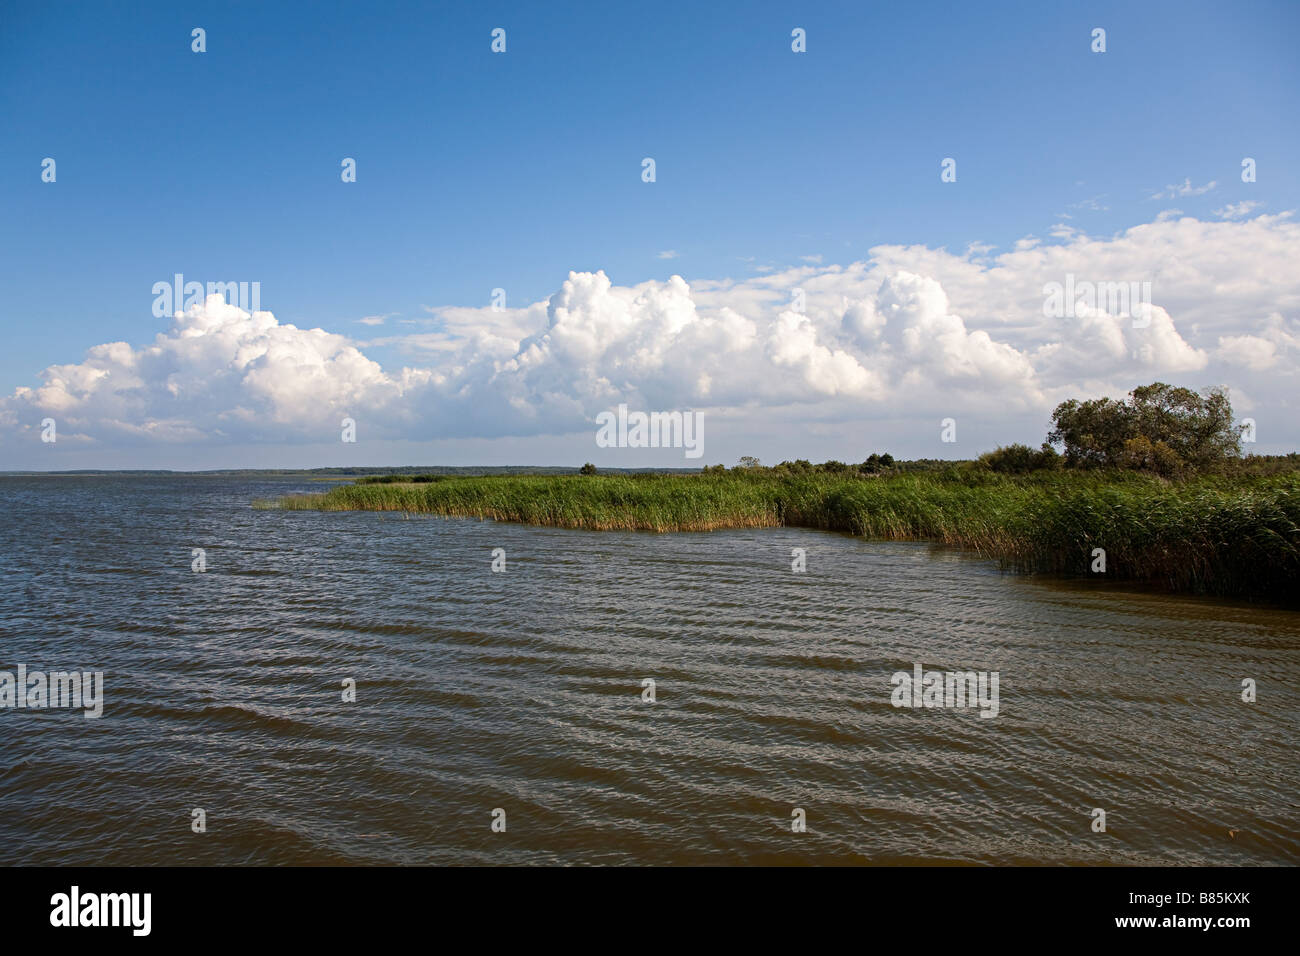 Reed beds around Jezioro Lebsko lake Slowinski national park Poland - Stock Image